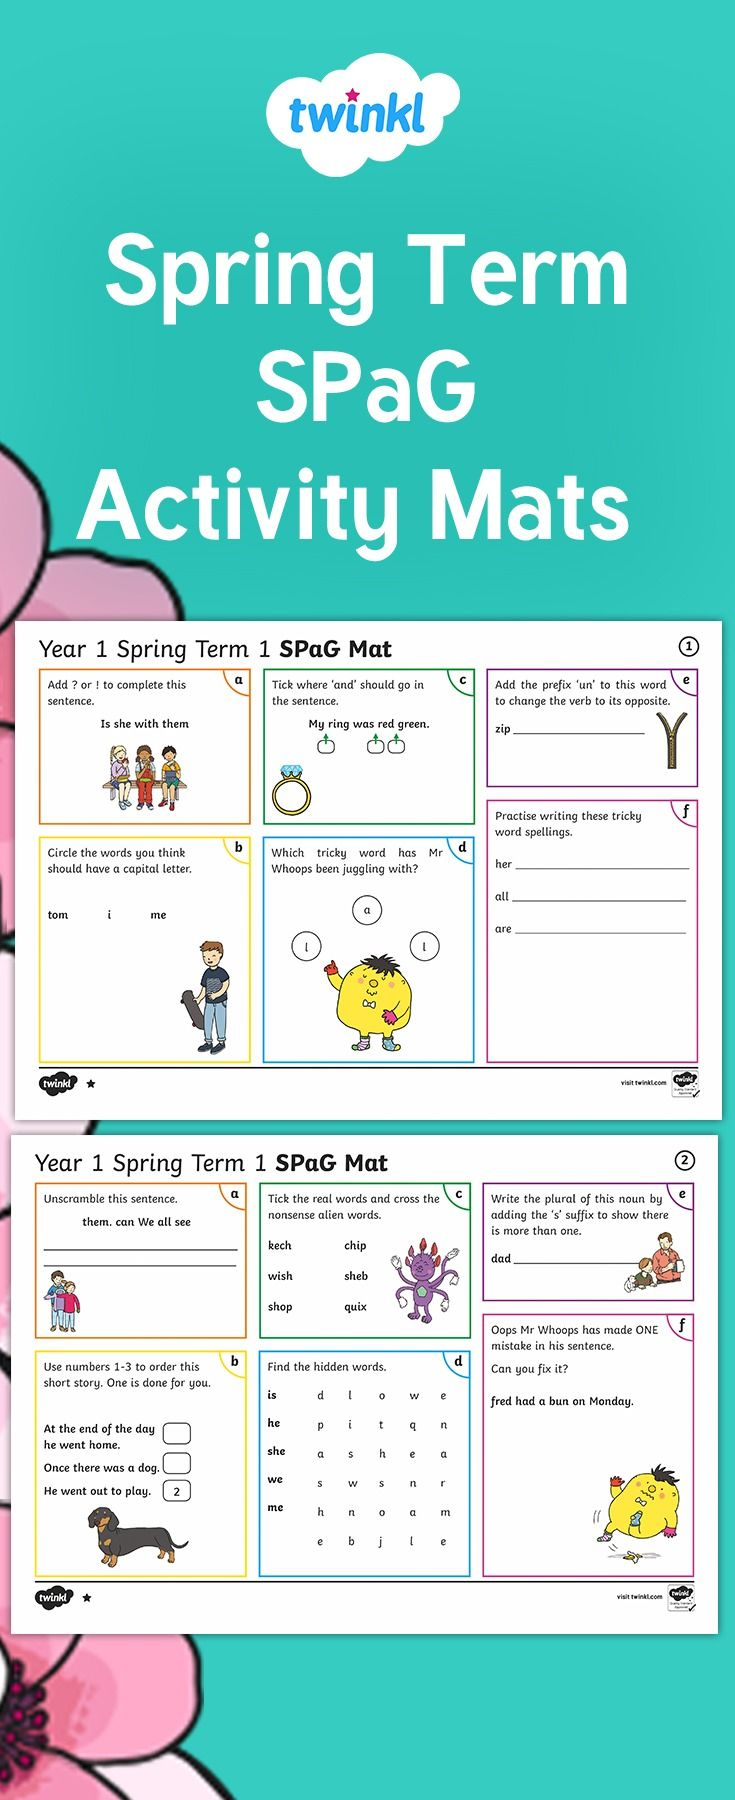 Use These Brilliant Spag Activity Mats To Revise Key Skills In